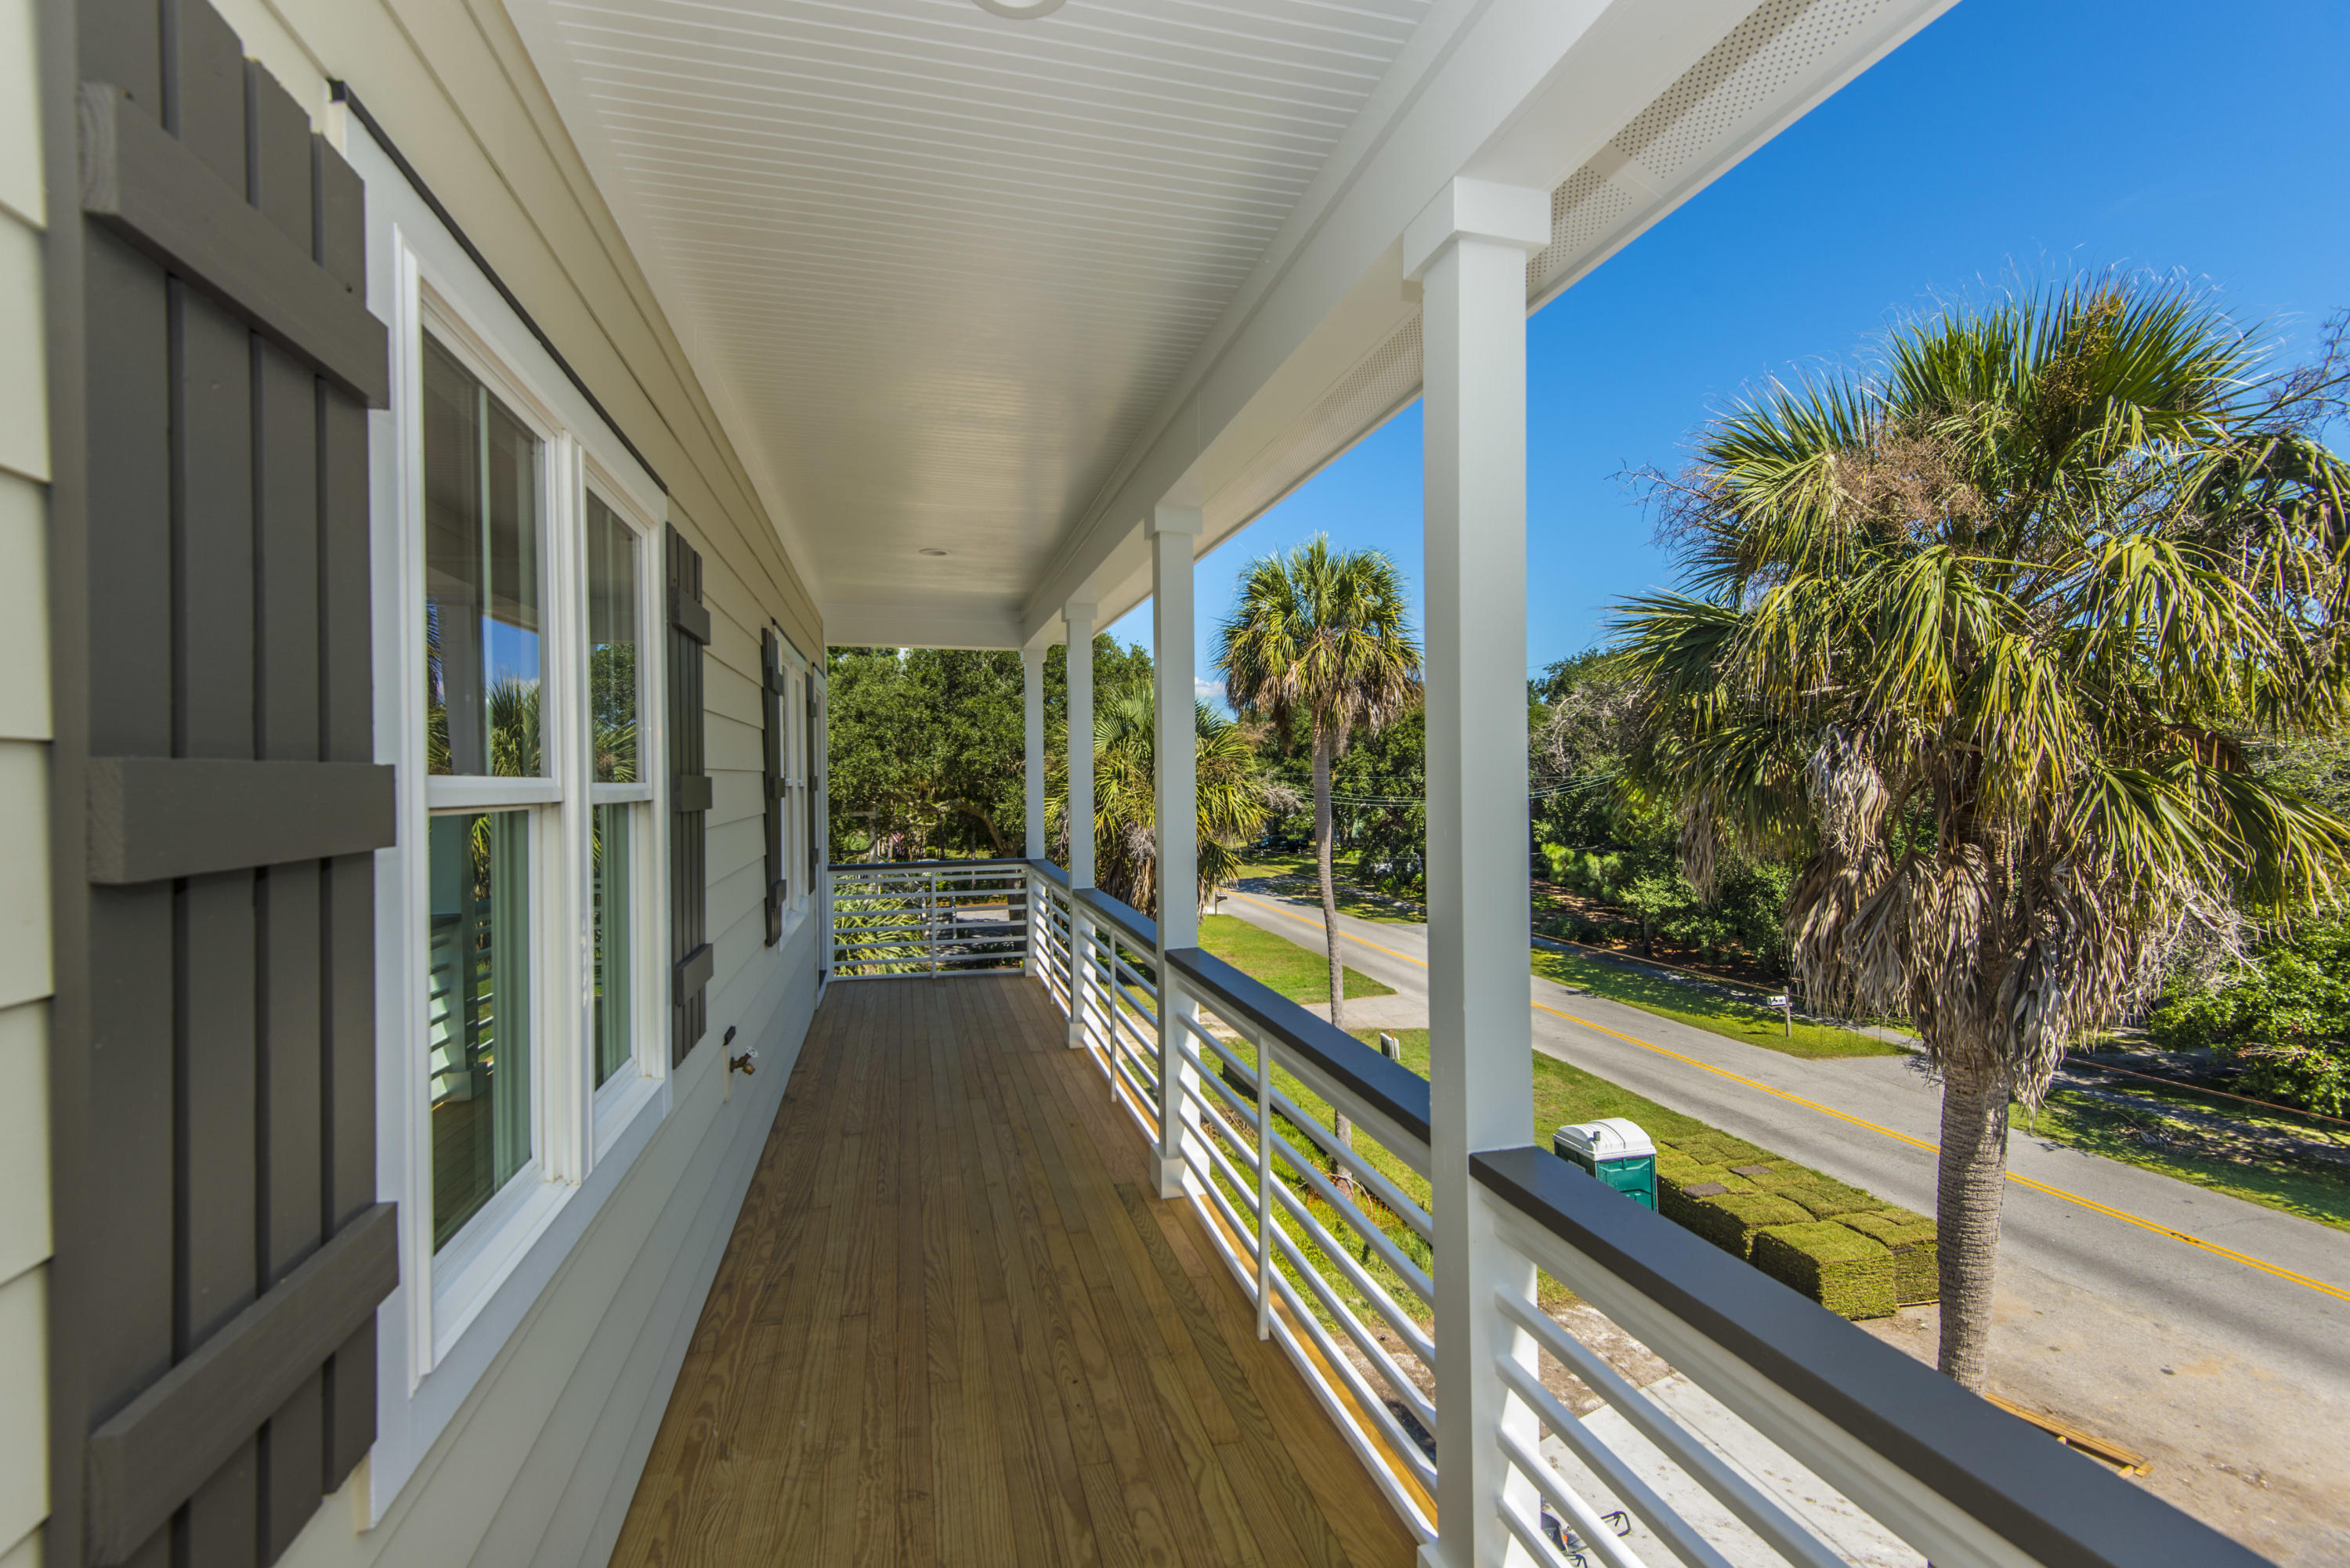 Isle of Palms Homes For Sale - 19 21st, Isle of Palms, SC - 0